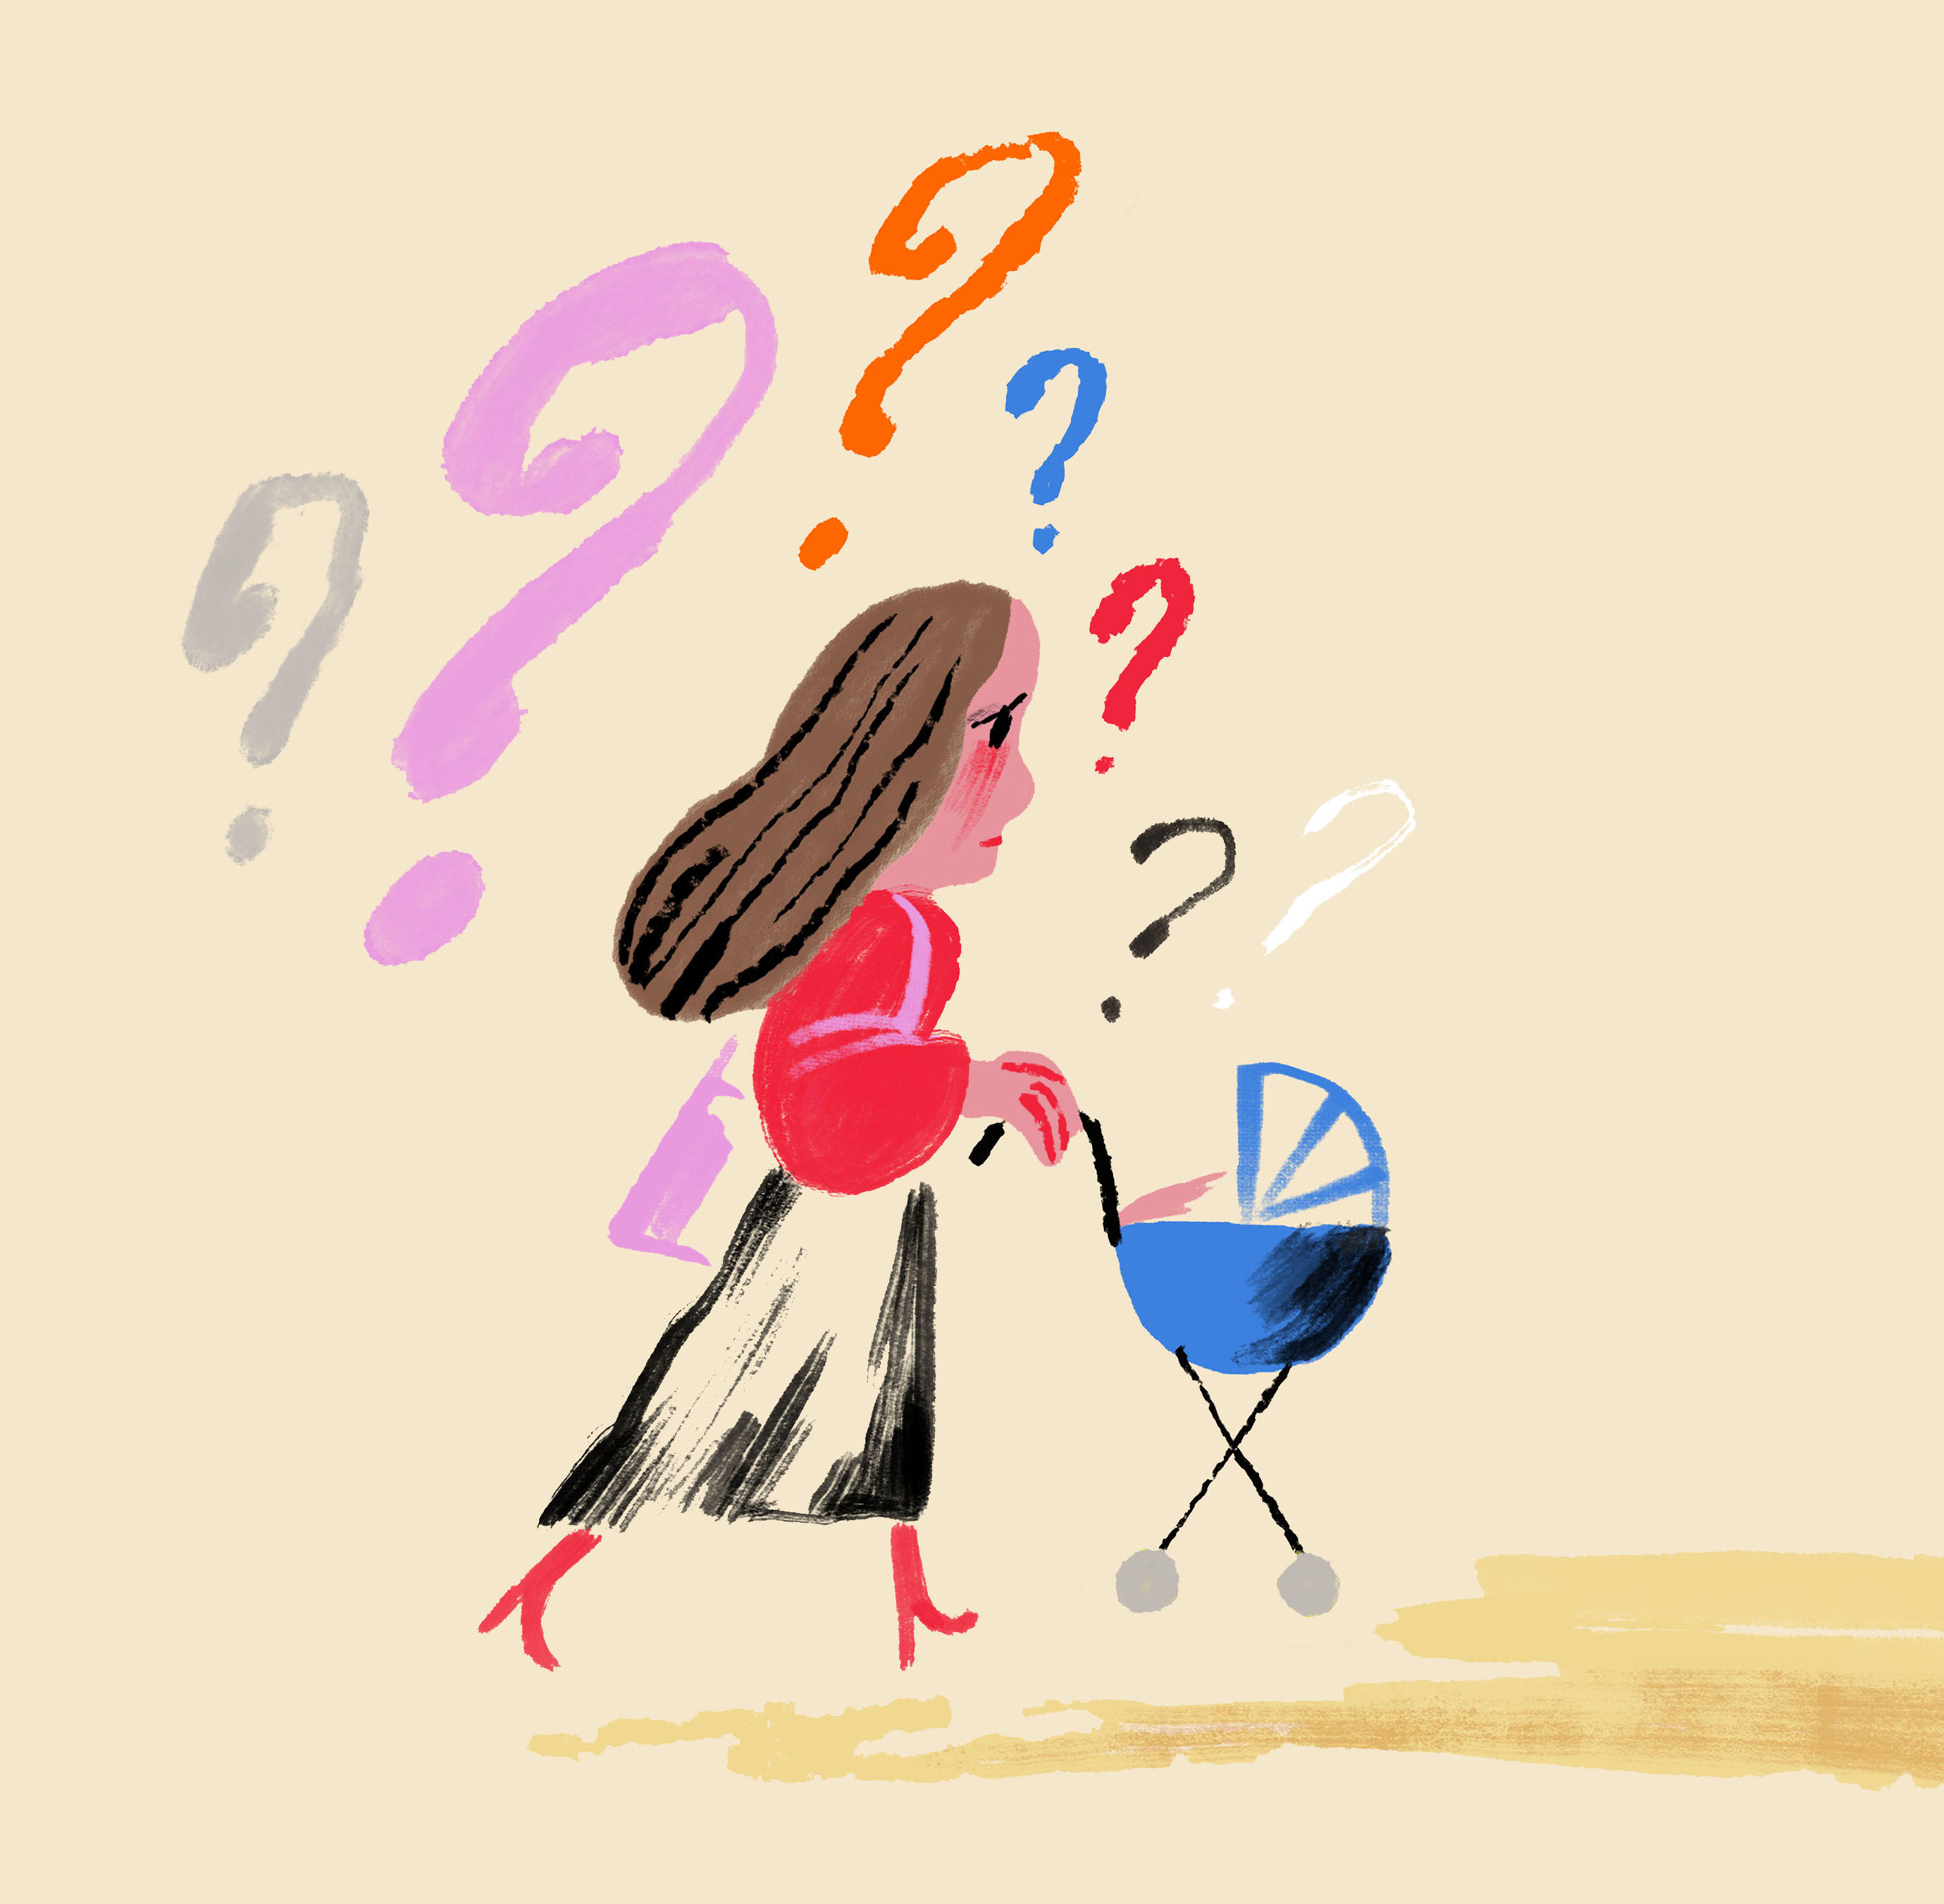 Illustration of a woman pushing a stroller surrounded by question marks